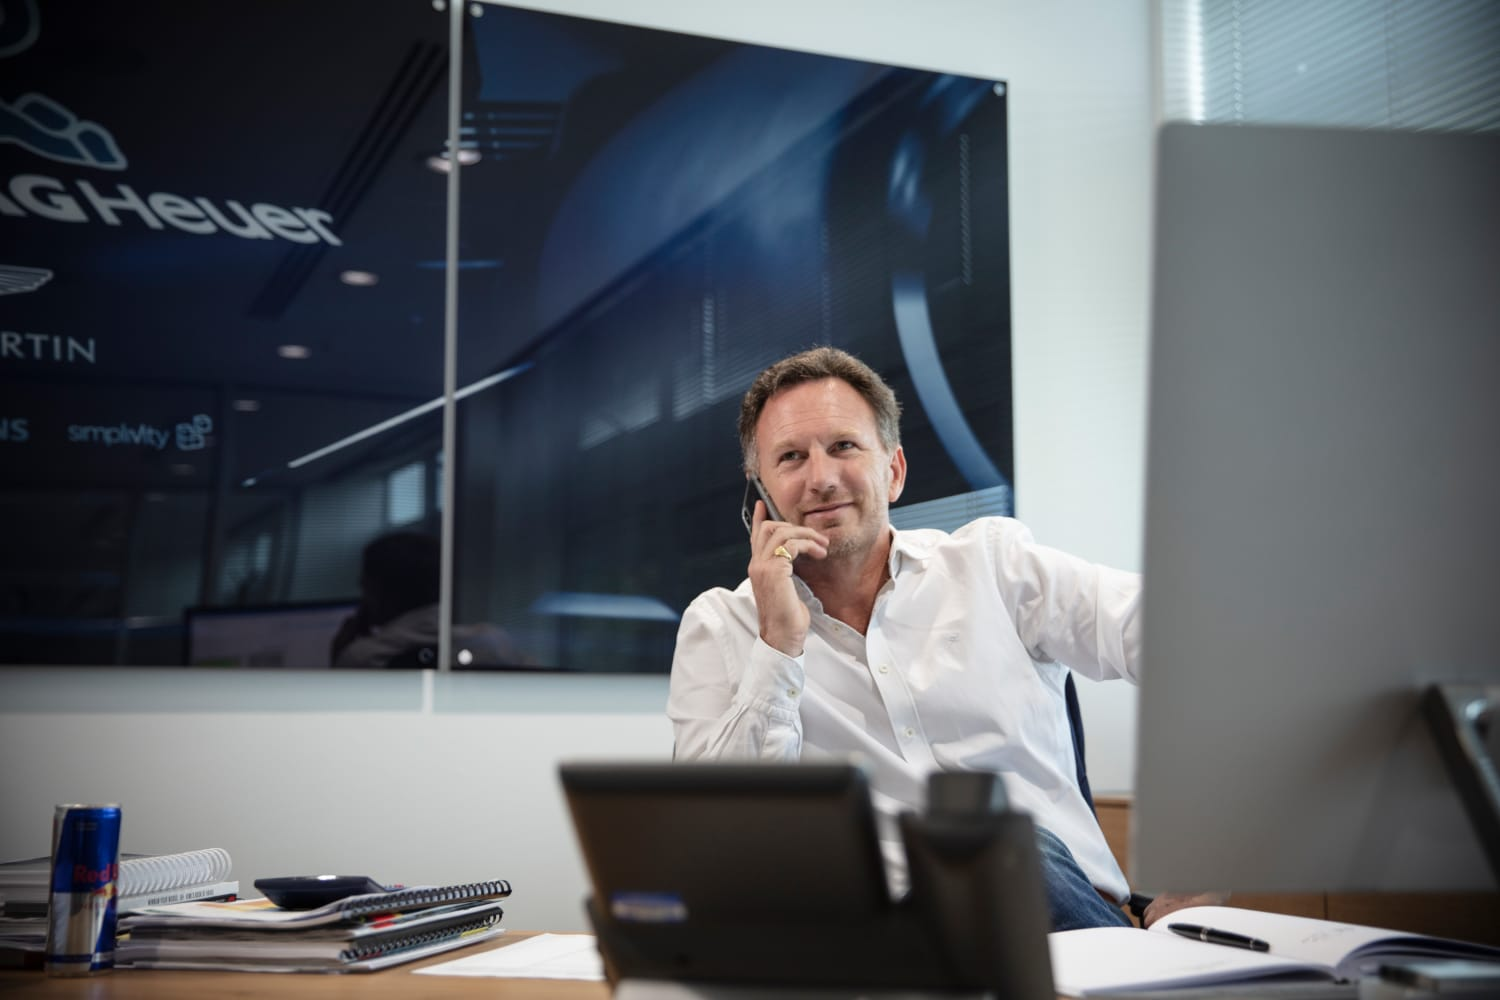 Christian Horner talks about how AI and ML can help Red bull in improving further